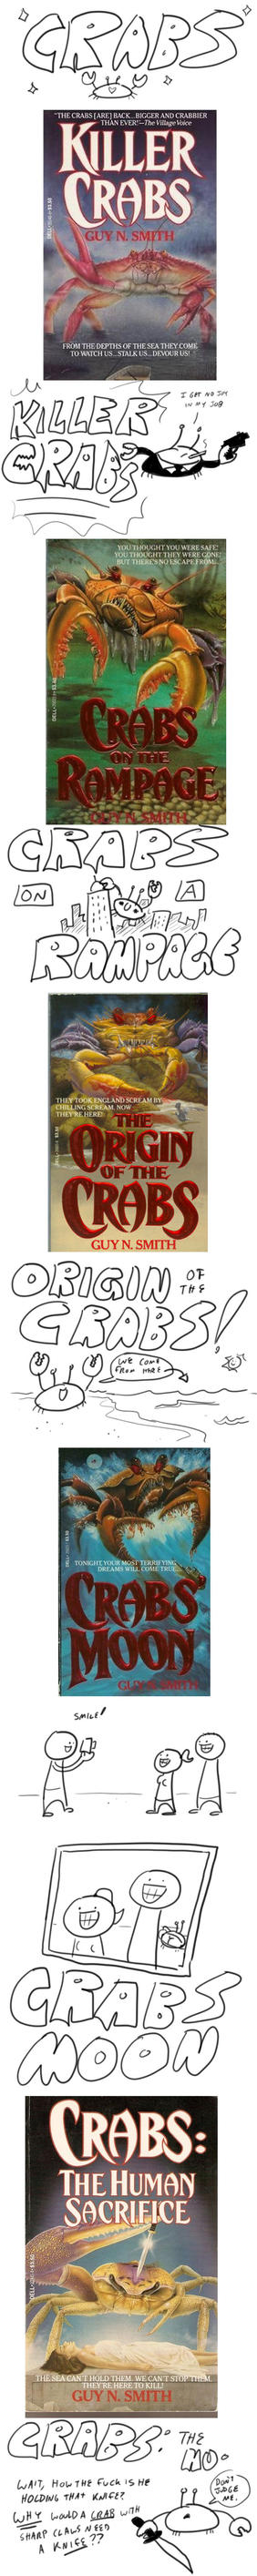 Ugly Book Cover Art : Ugly book covers crabs collection by romanjones on deviantart